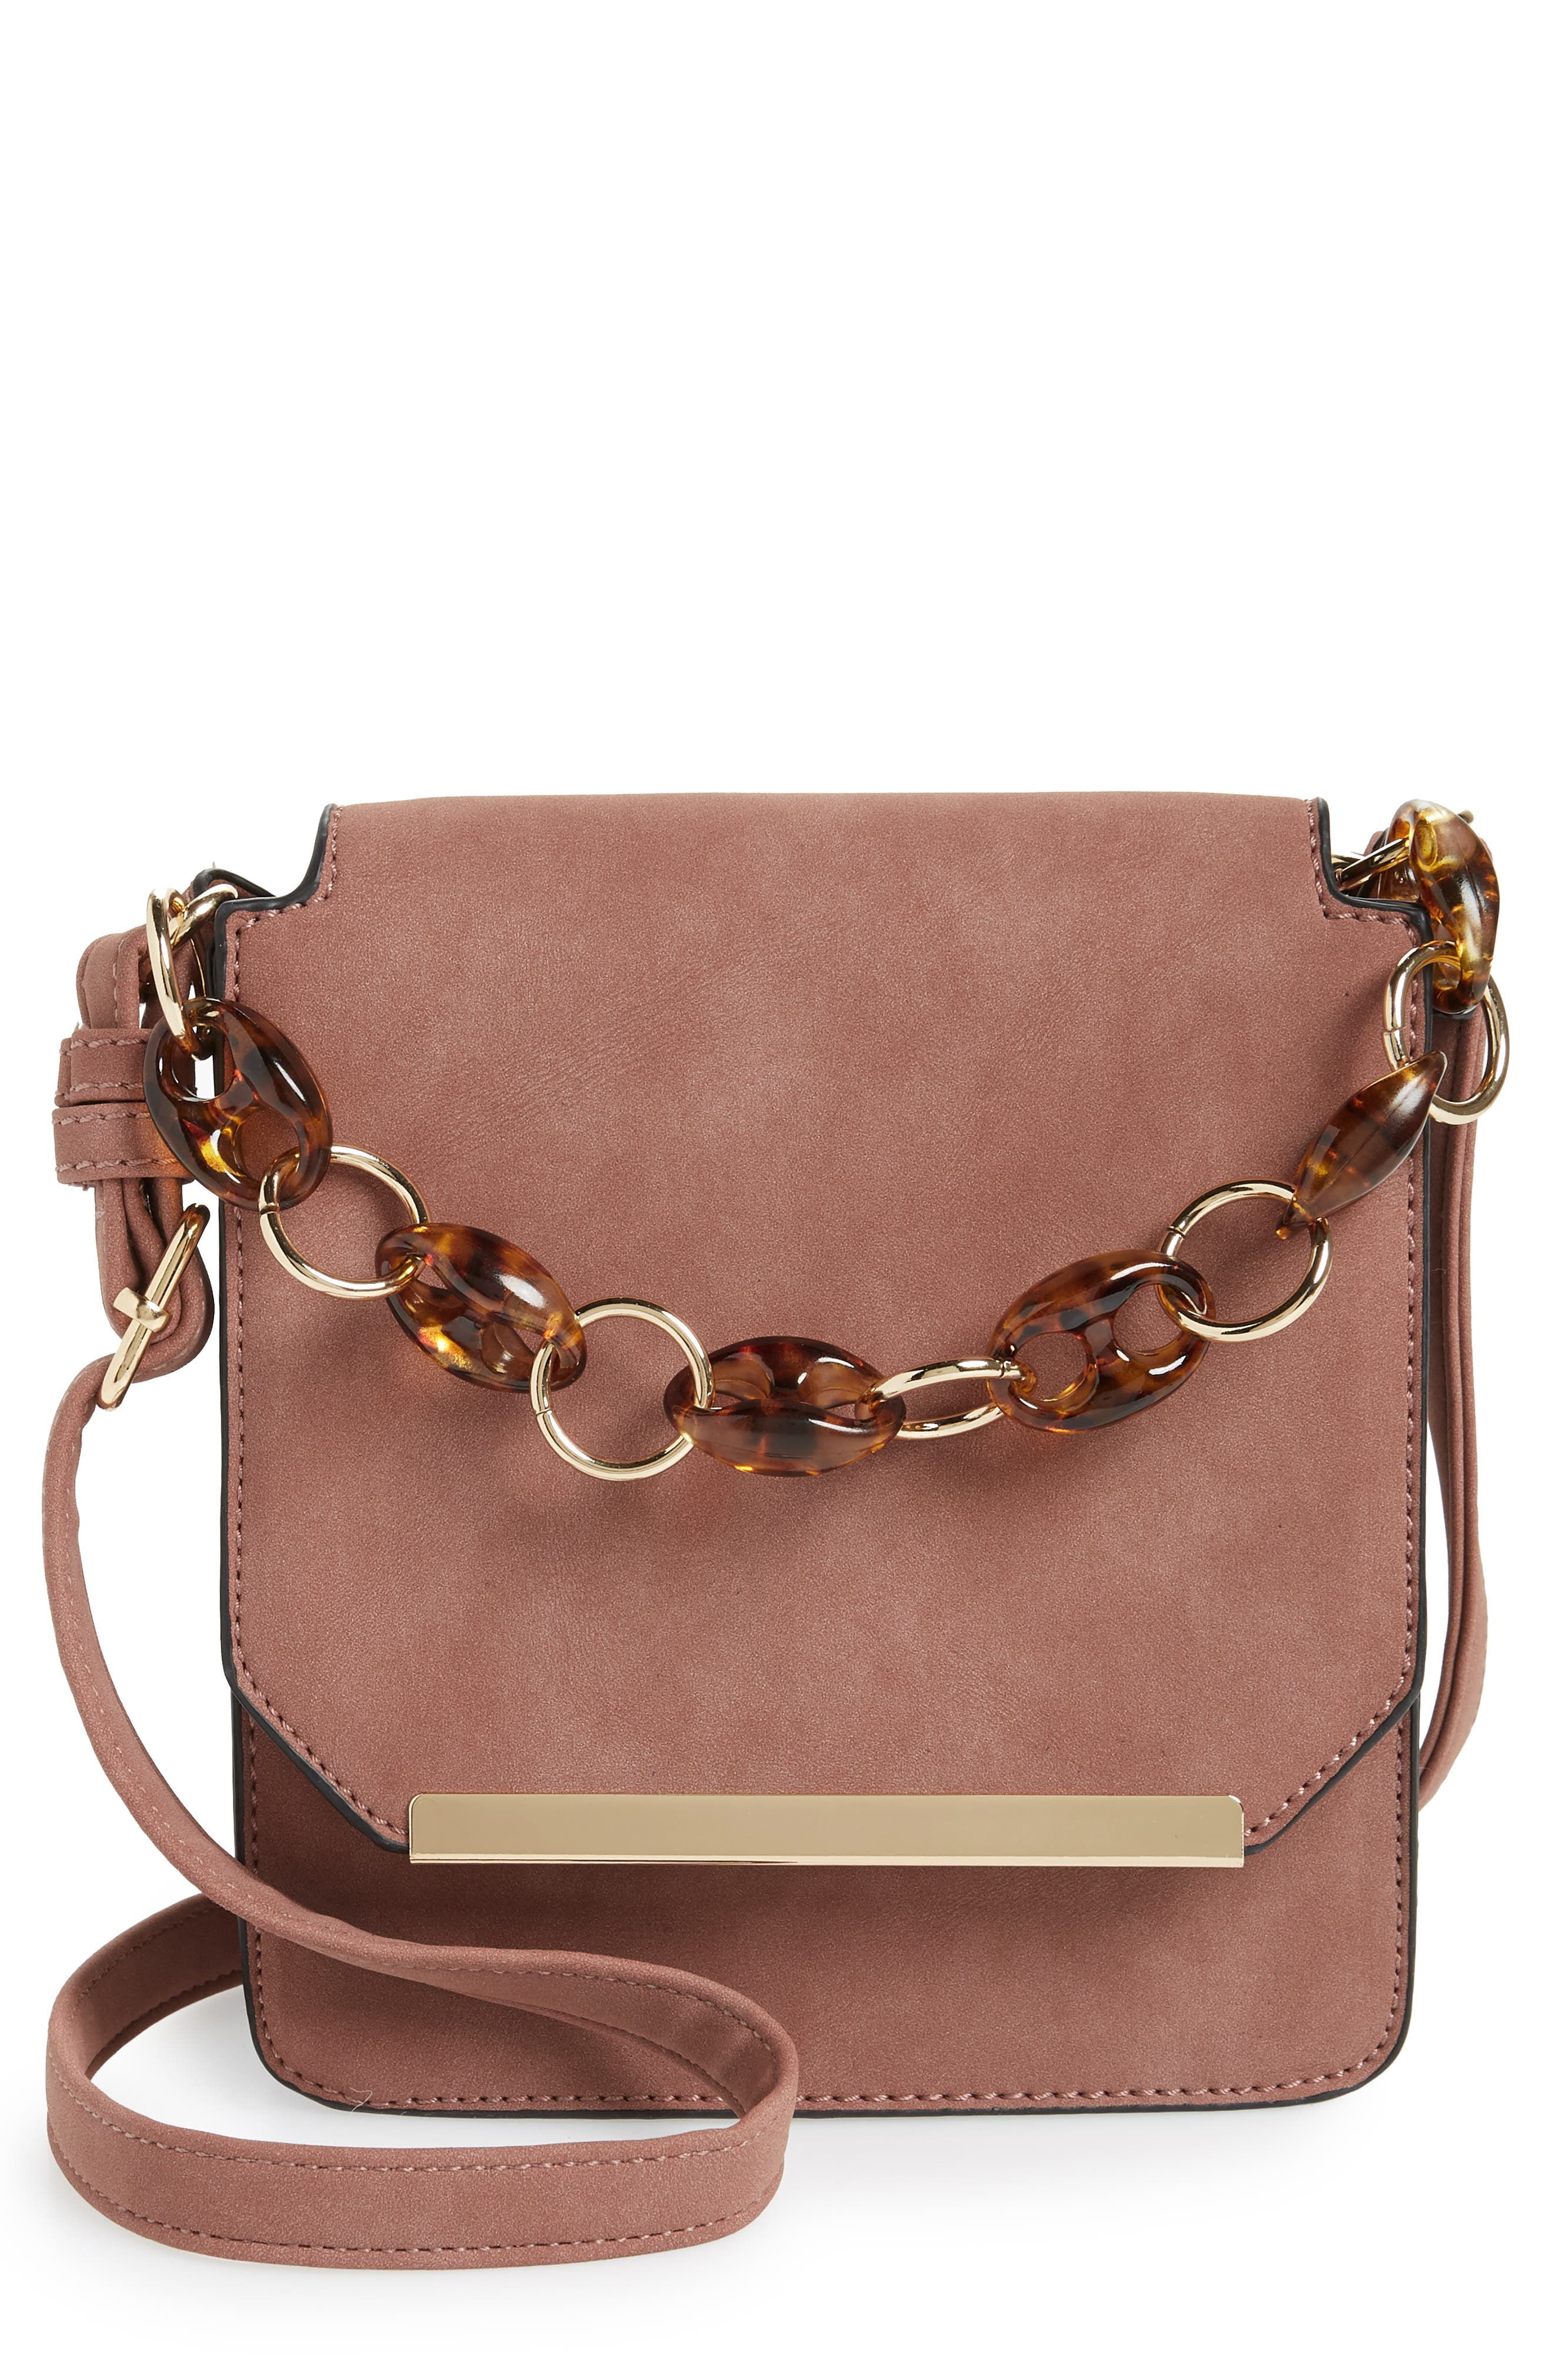 VIOLET RAY NEW YORK Faux Leather Crossbody Bag, Main, color, 250